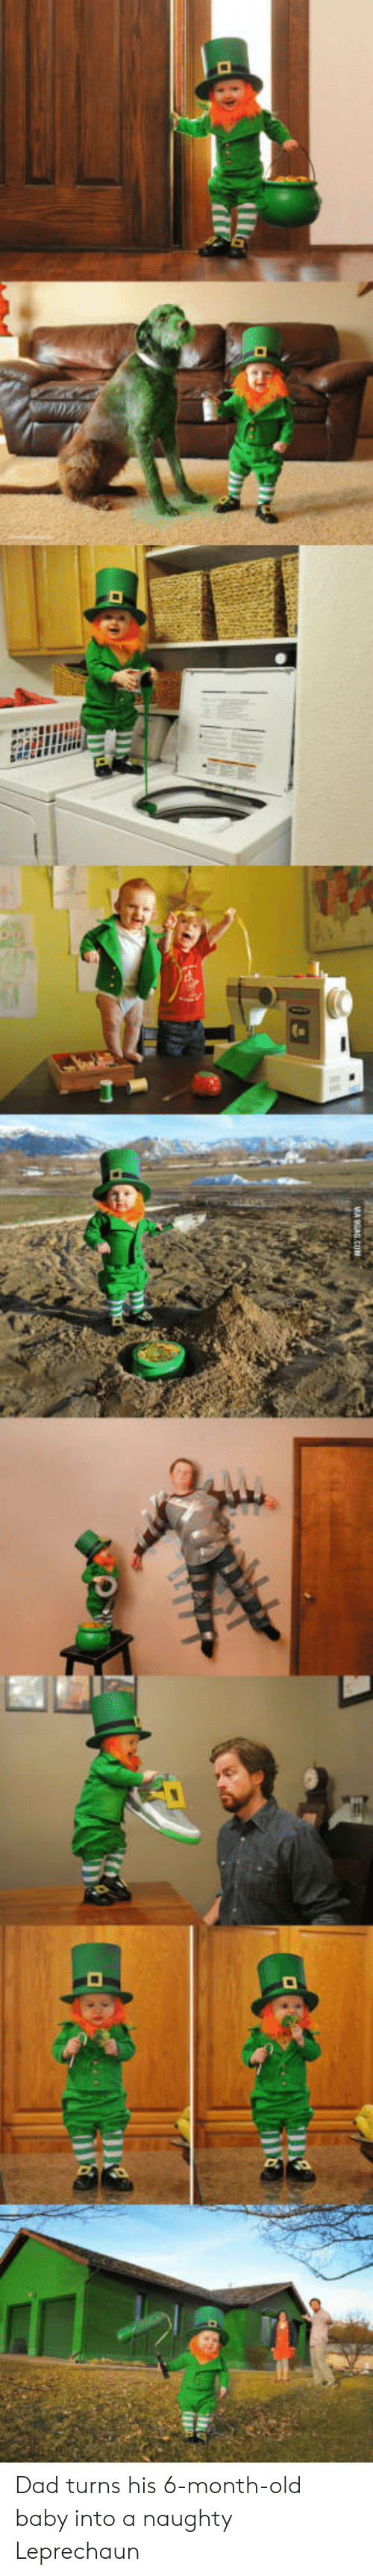 Dad, Naughty, and Old: Dad turns his 6-month-old baby into a naughty Leprechaun